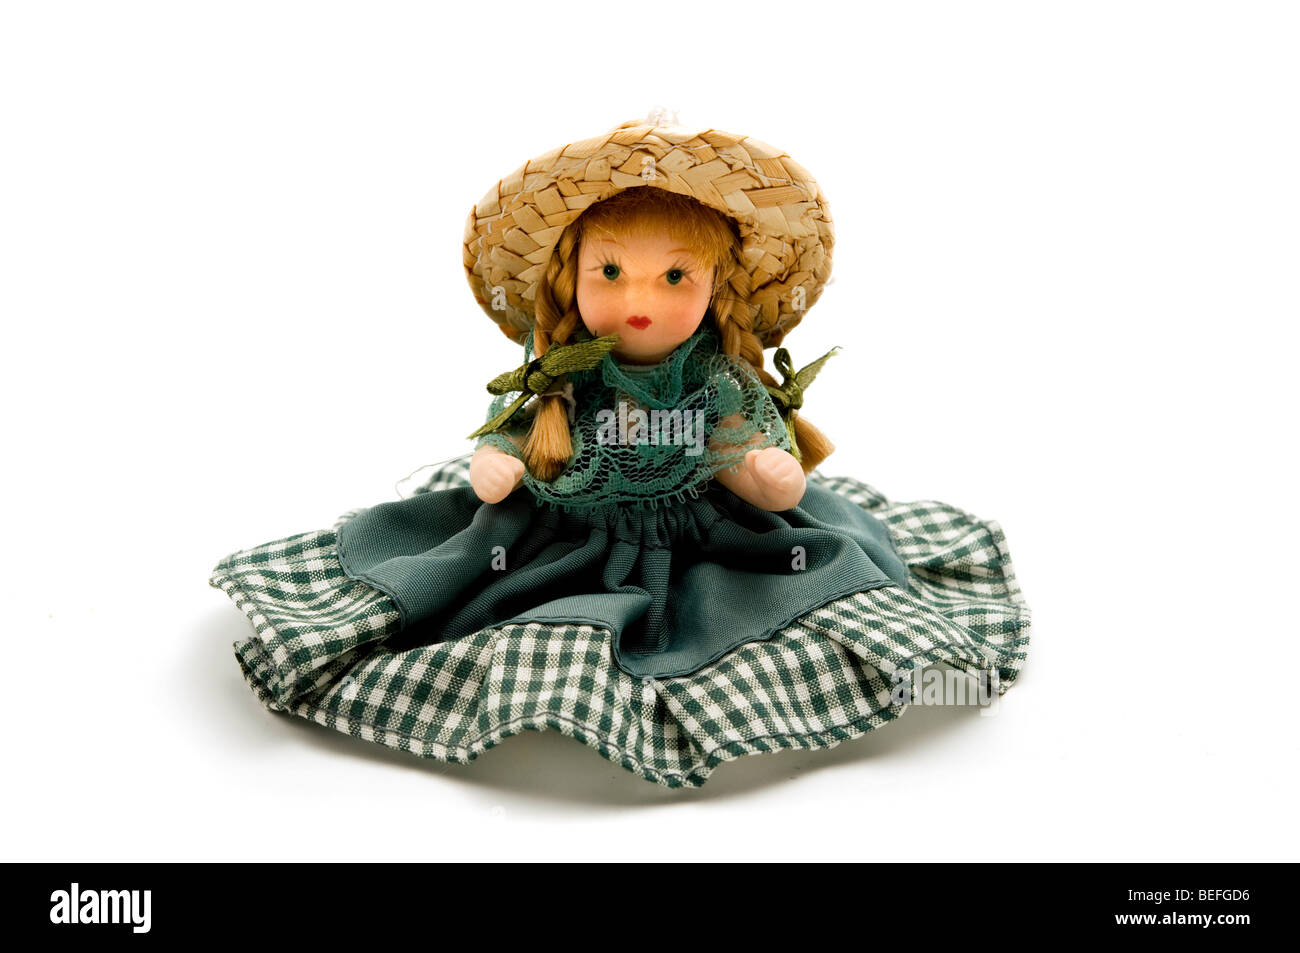 Old porcelain doll on a white background - Stock Image